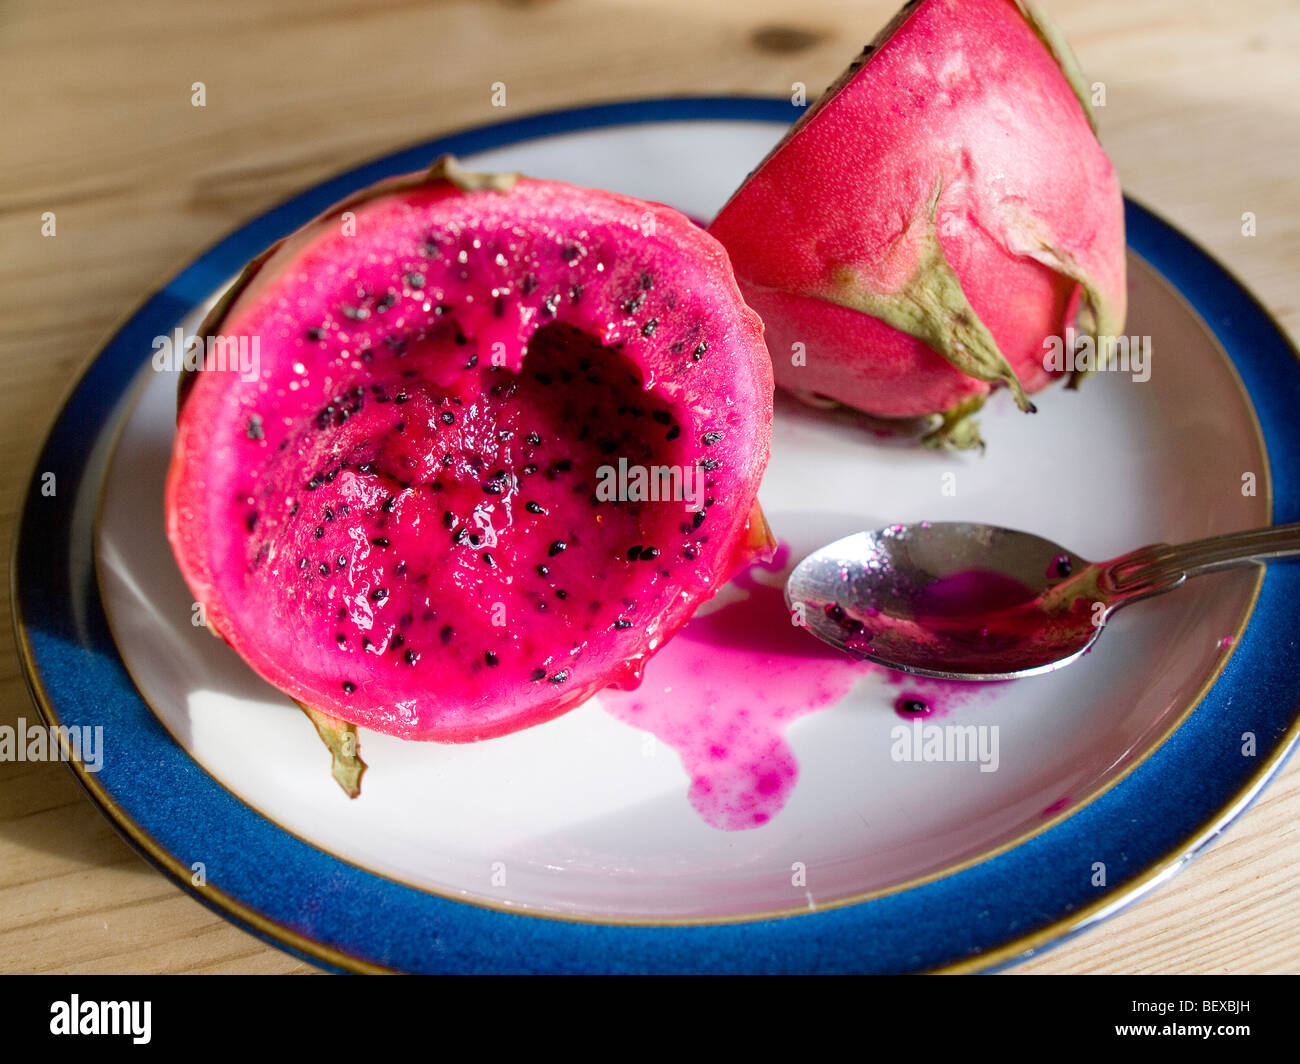 Pictures Of Ripe Dragon Fruit